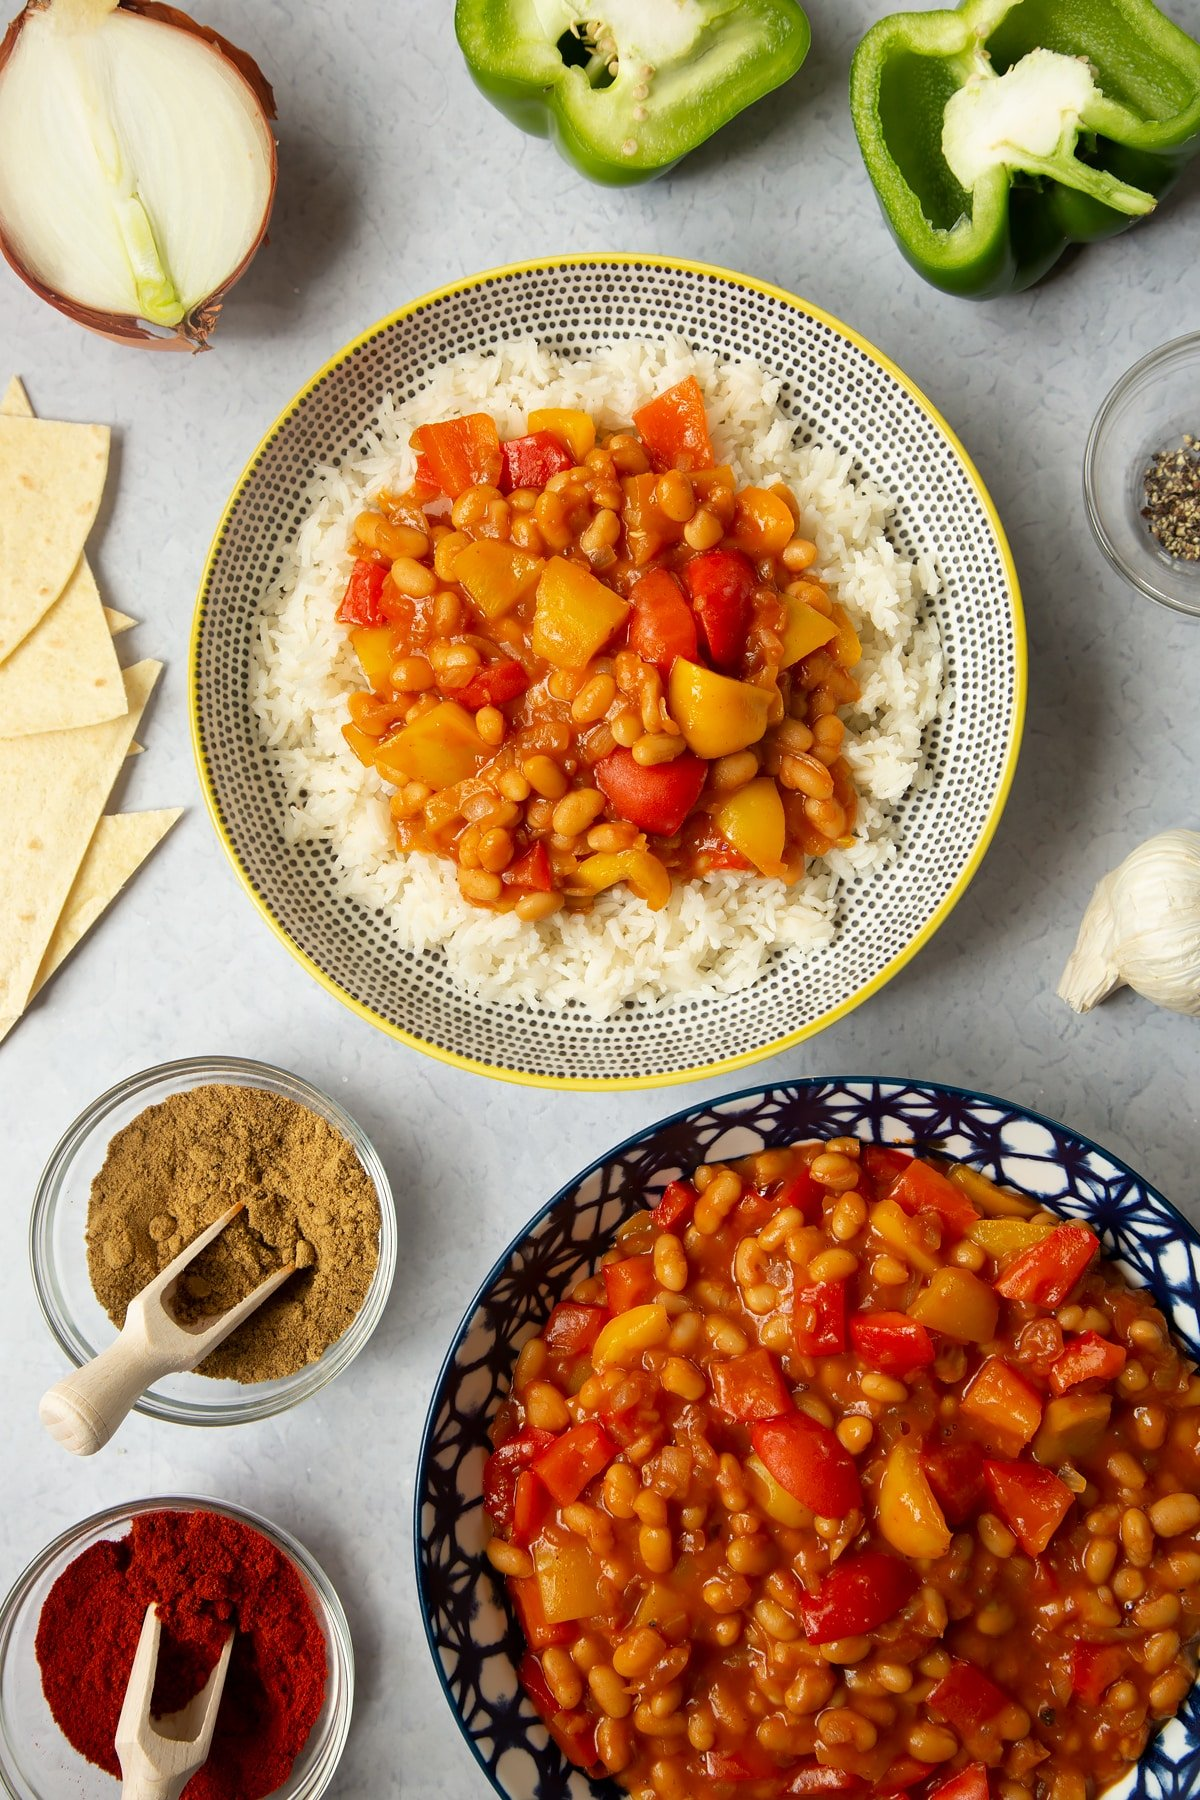 Baked bean chilli served on rice. Another bowl holds more chilli. Ingredients such as peppers, garlic and spices surround the bowls.